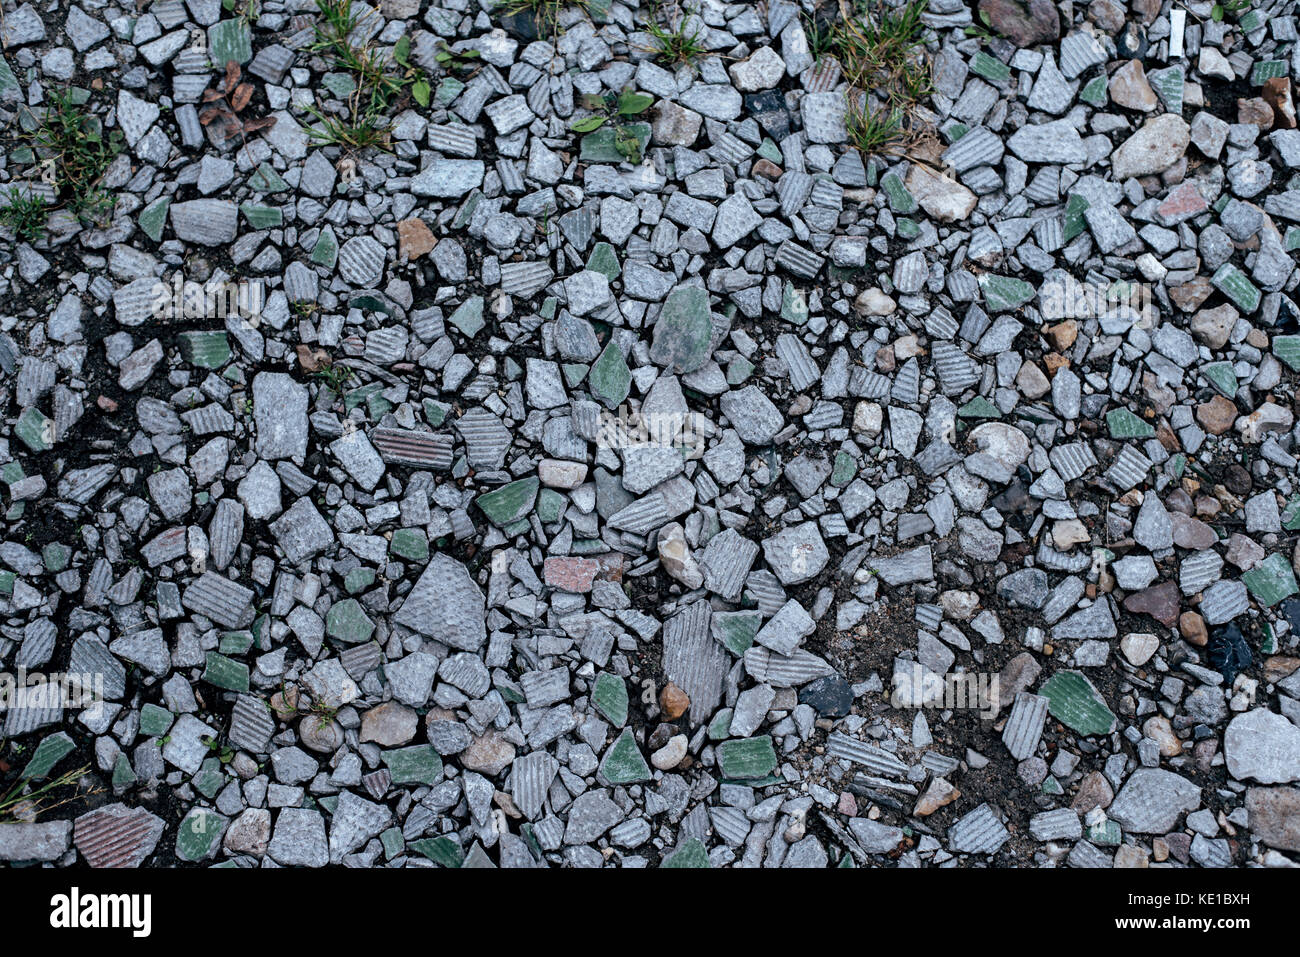 Form And Texture : Stones on ground background and texture form with a rocky